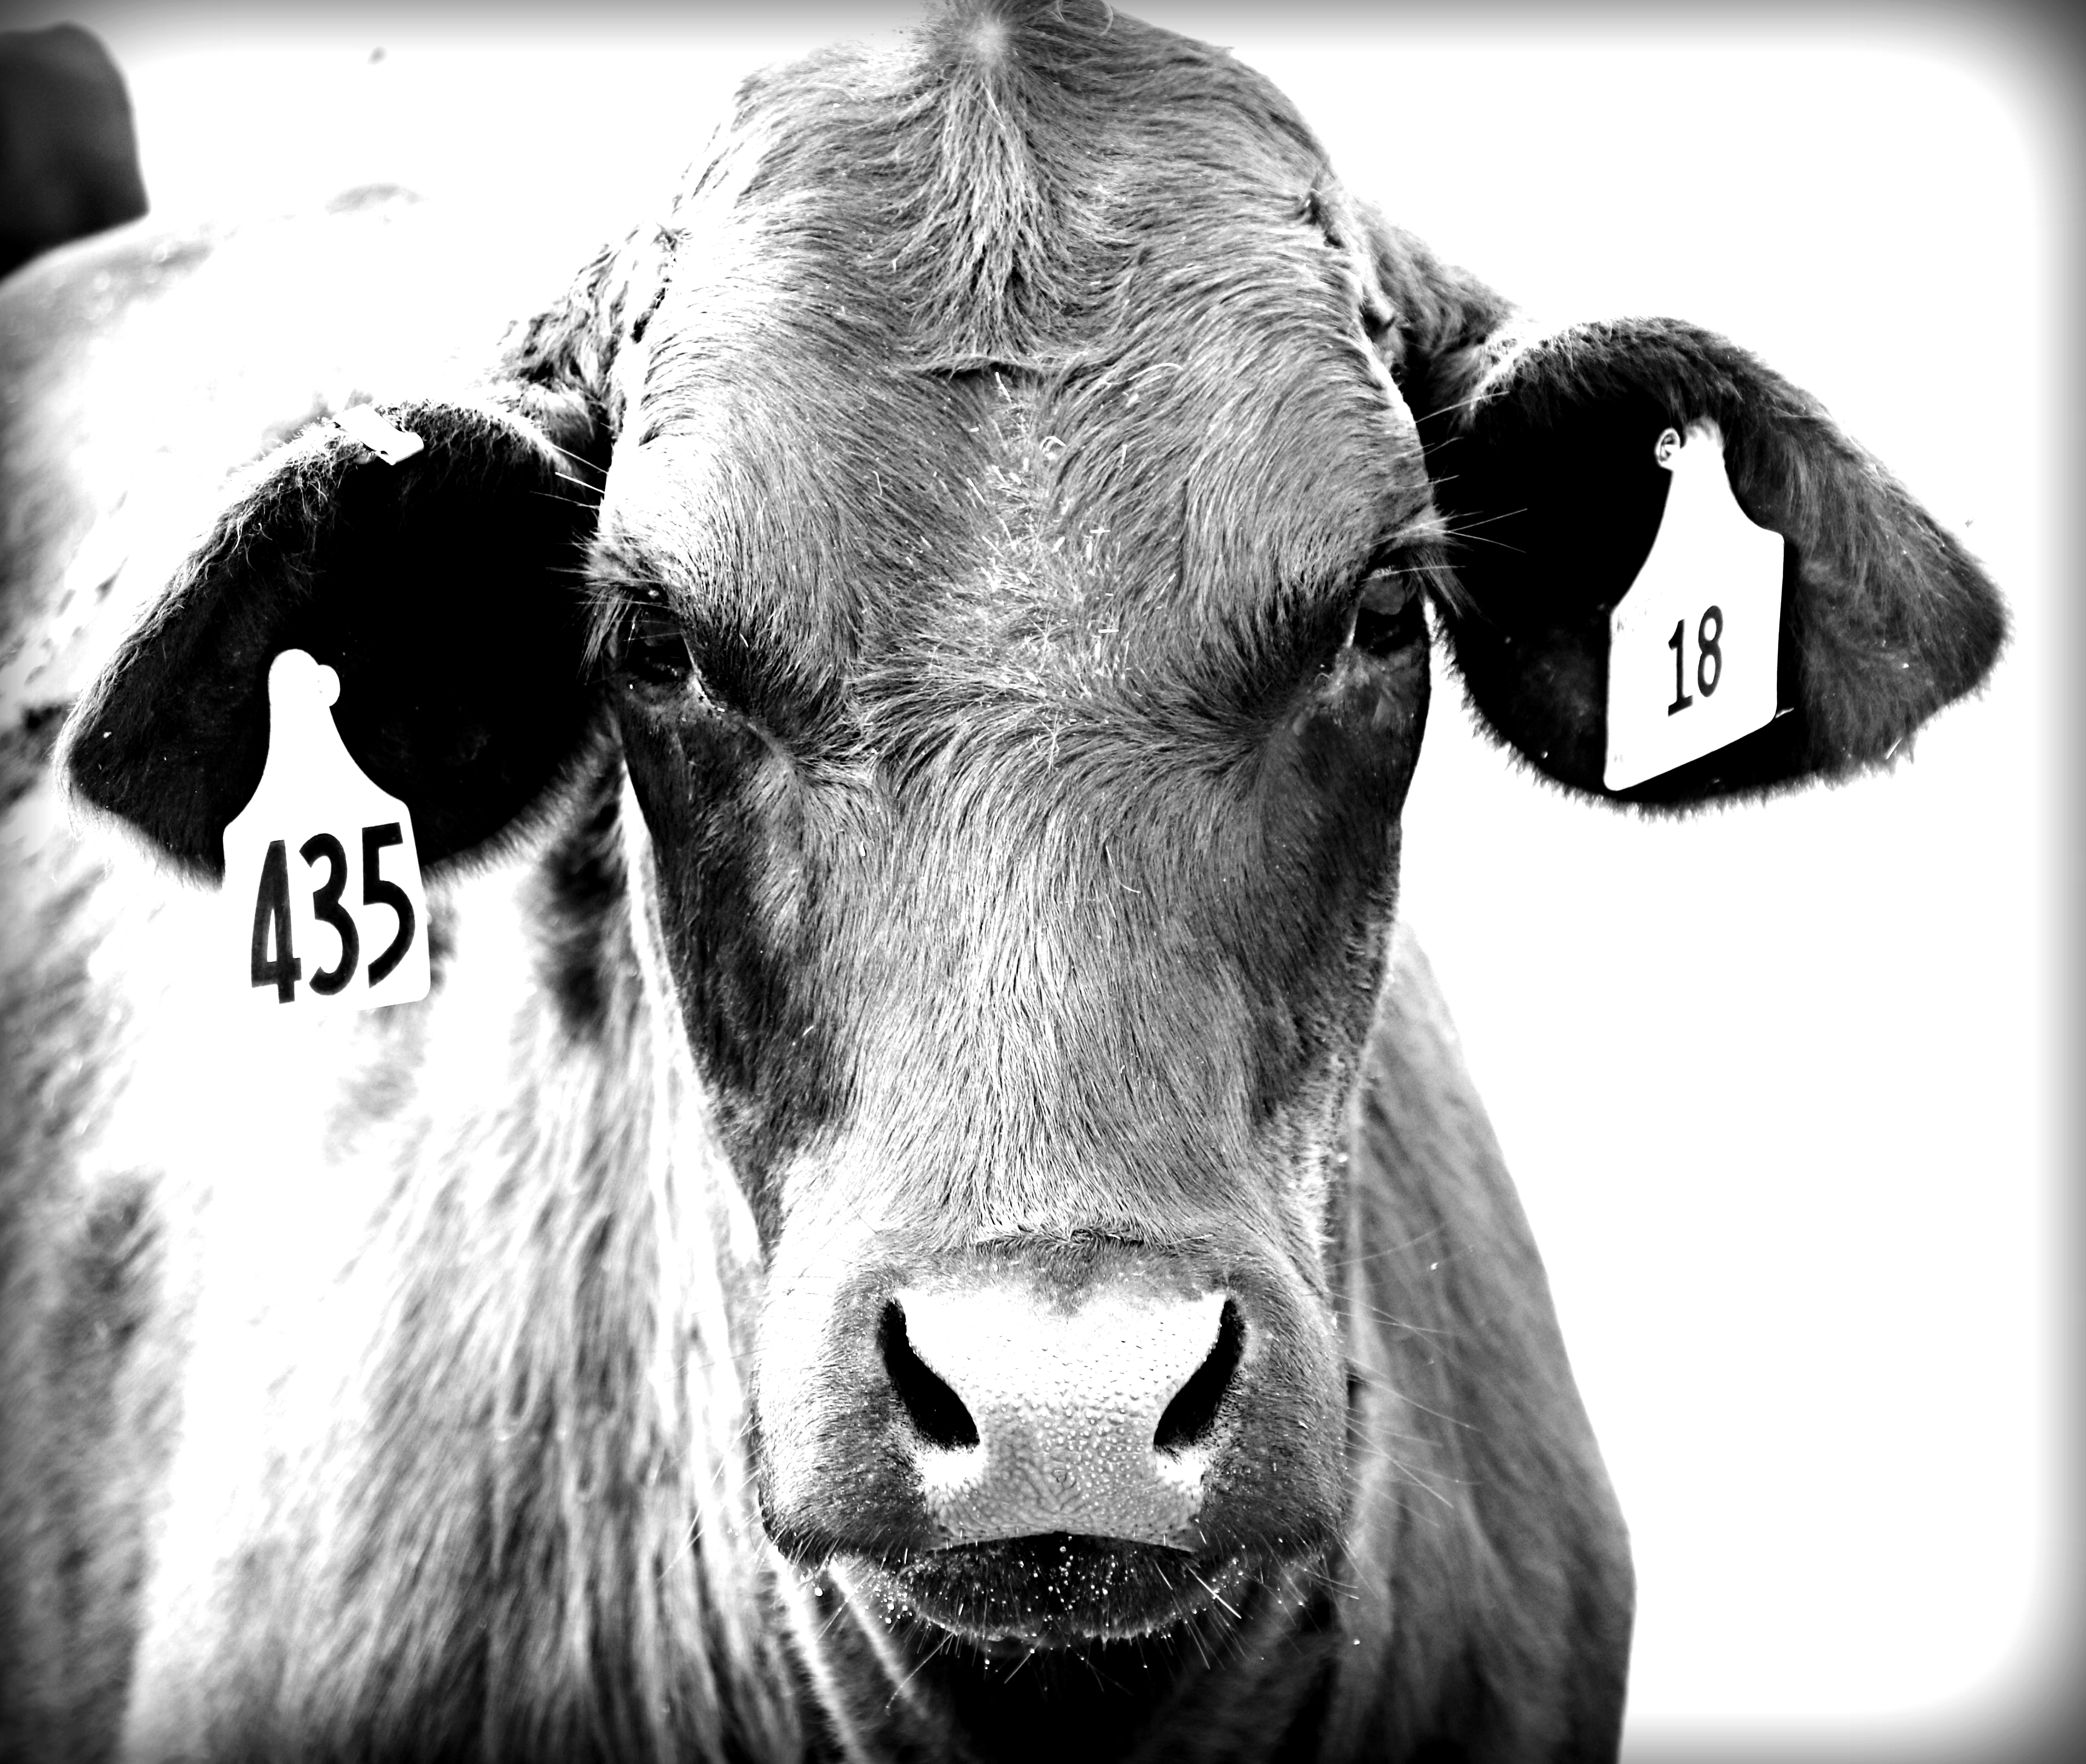 BW 435 cow